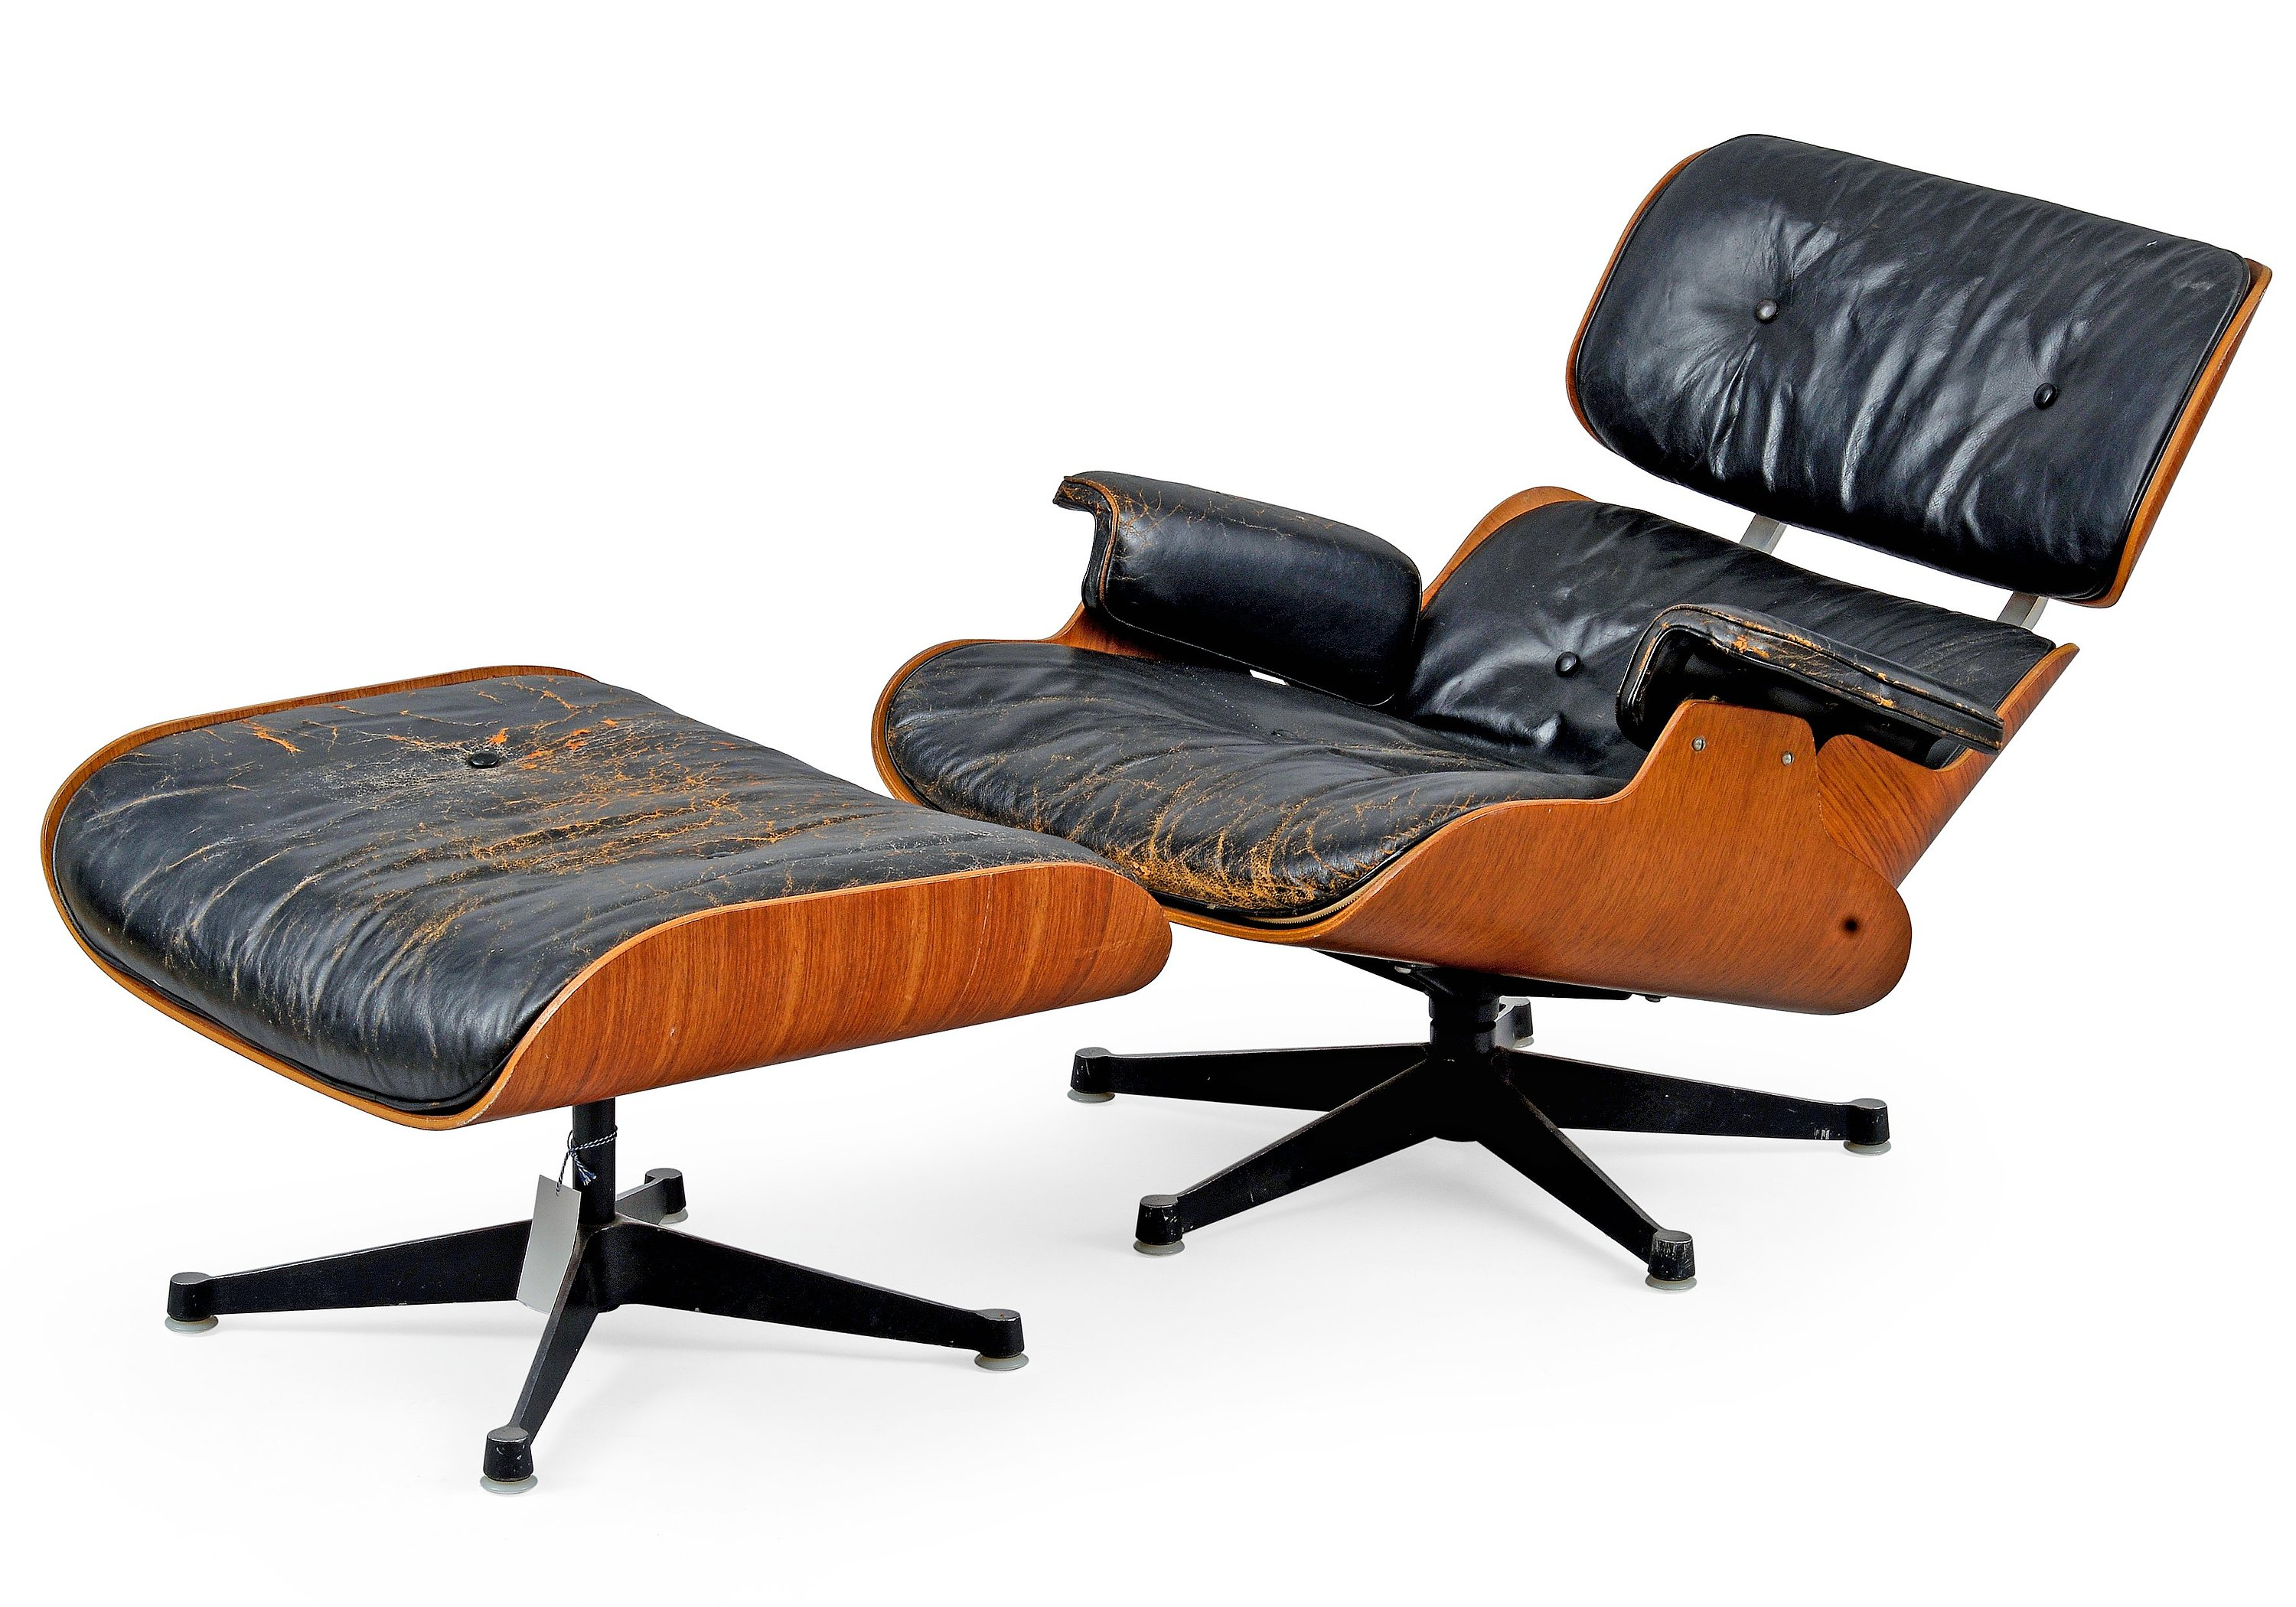 CHARLES & RAY EAMES, LOUNGE CHAIR WITH OTTOMAN.